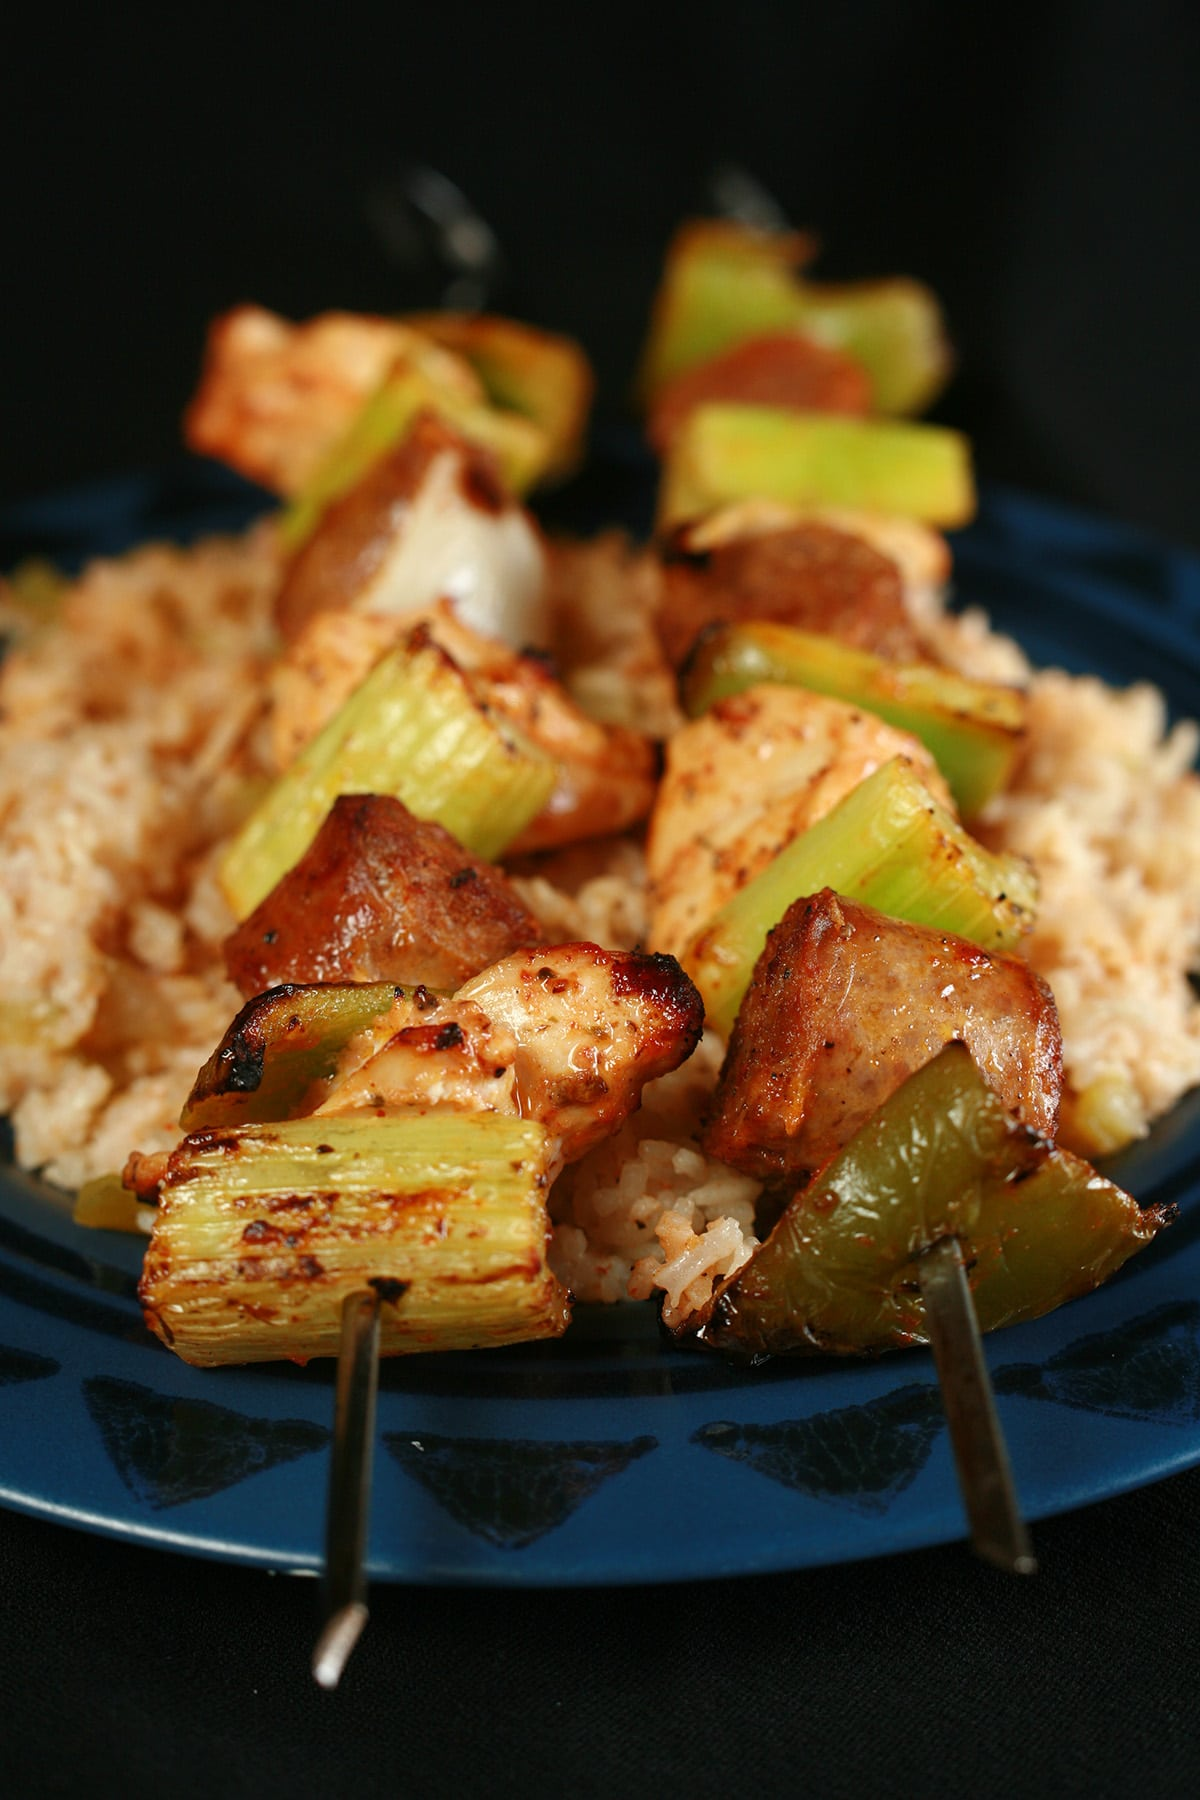 """Two grilled jambayala skewers of chicken, sausage, green onions, onion, and celery on a bed of intensely seasoned """"dirty"""" rice."""